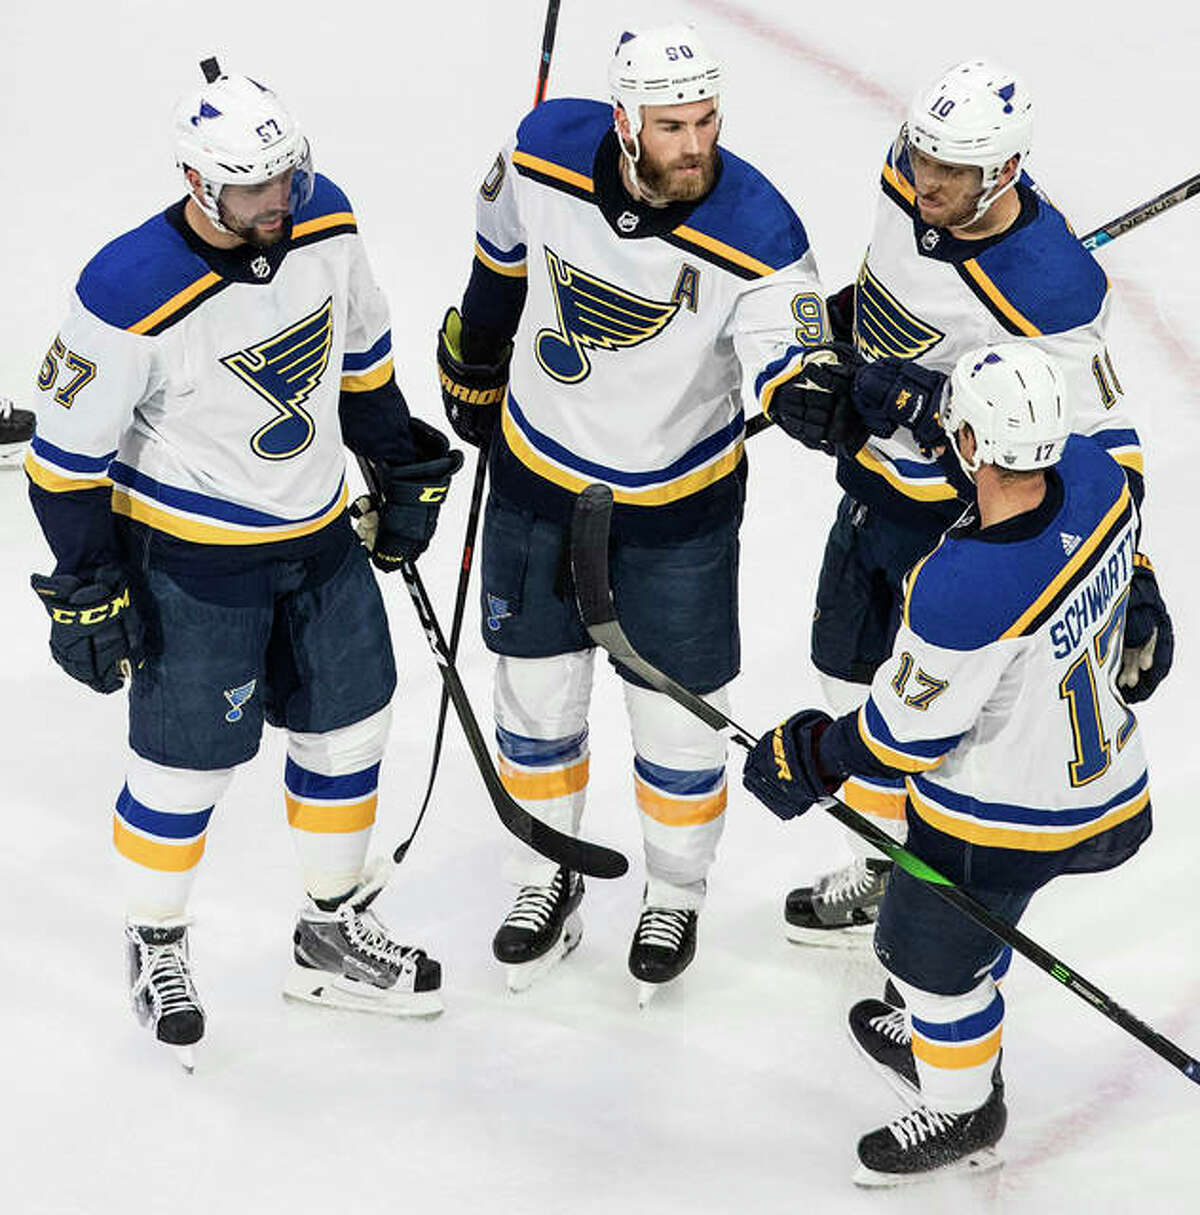 The Blues' (from left) David Perron, Ryan O'Reilly, Brayden Schenn and Jaden Schwartz celebrate a goal during the first period of an NHL Western Conference Stanley Cup playoff game in Edmonton, Alberta, on Monday.